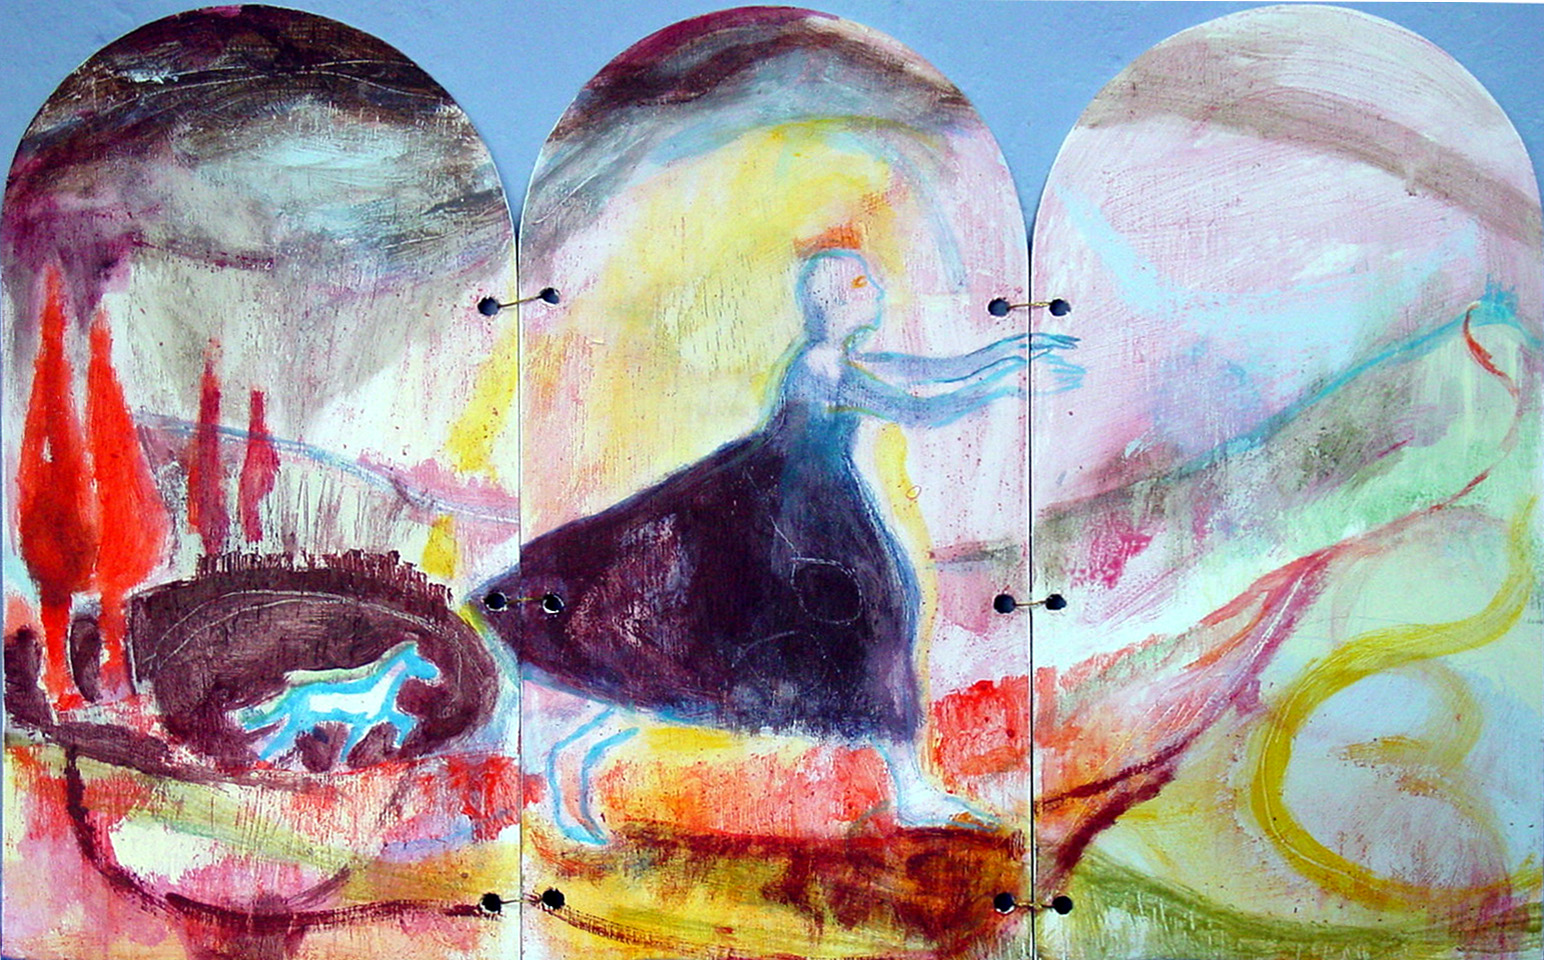 Triptych - North Shield - 2002 - Acrylic, Mixed Media on Plywood - 60 X 37 cm